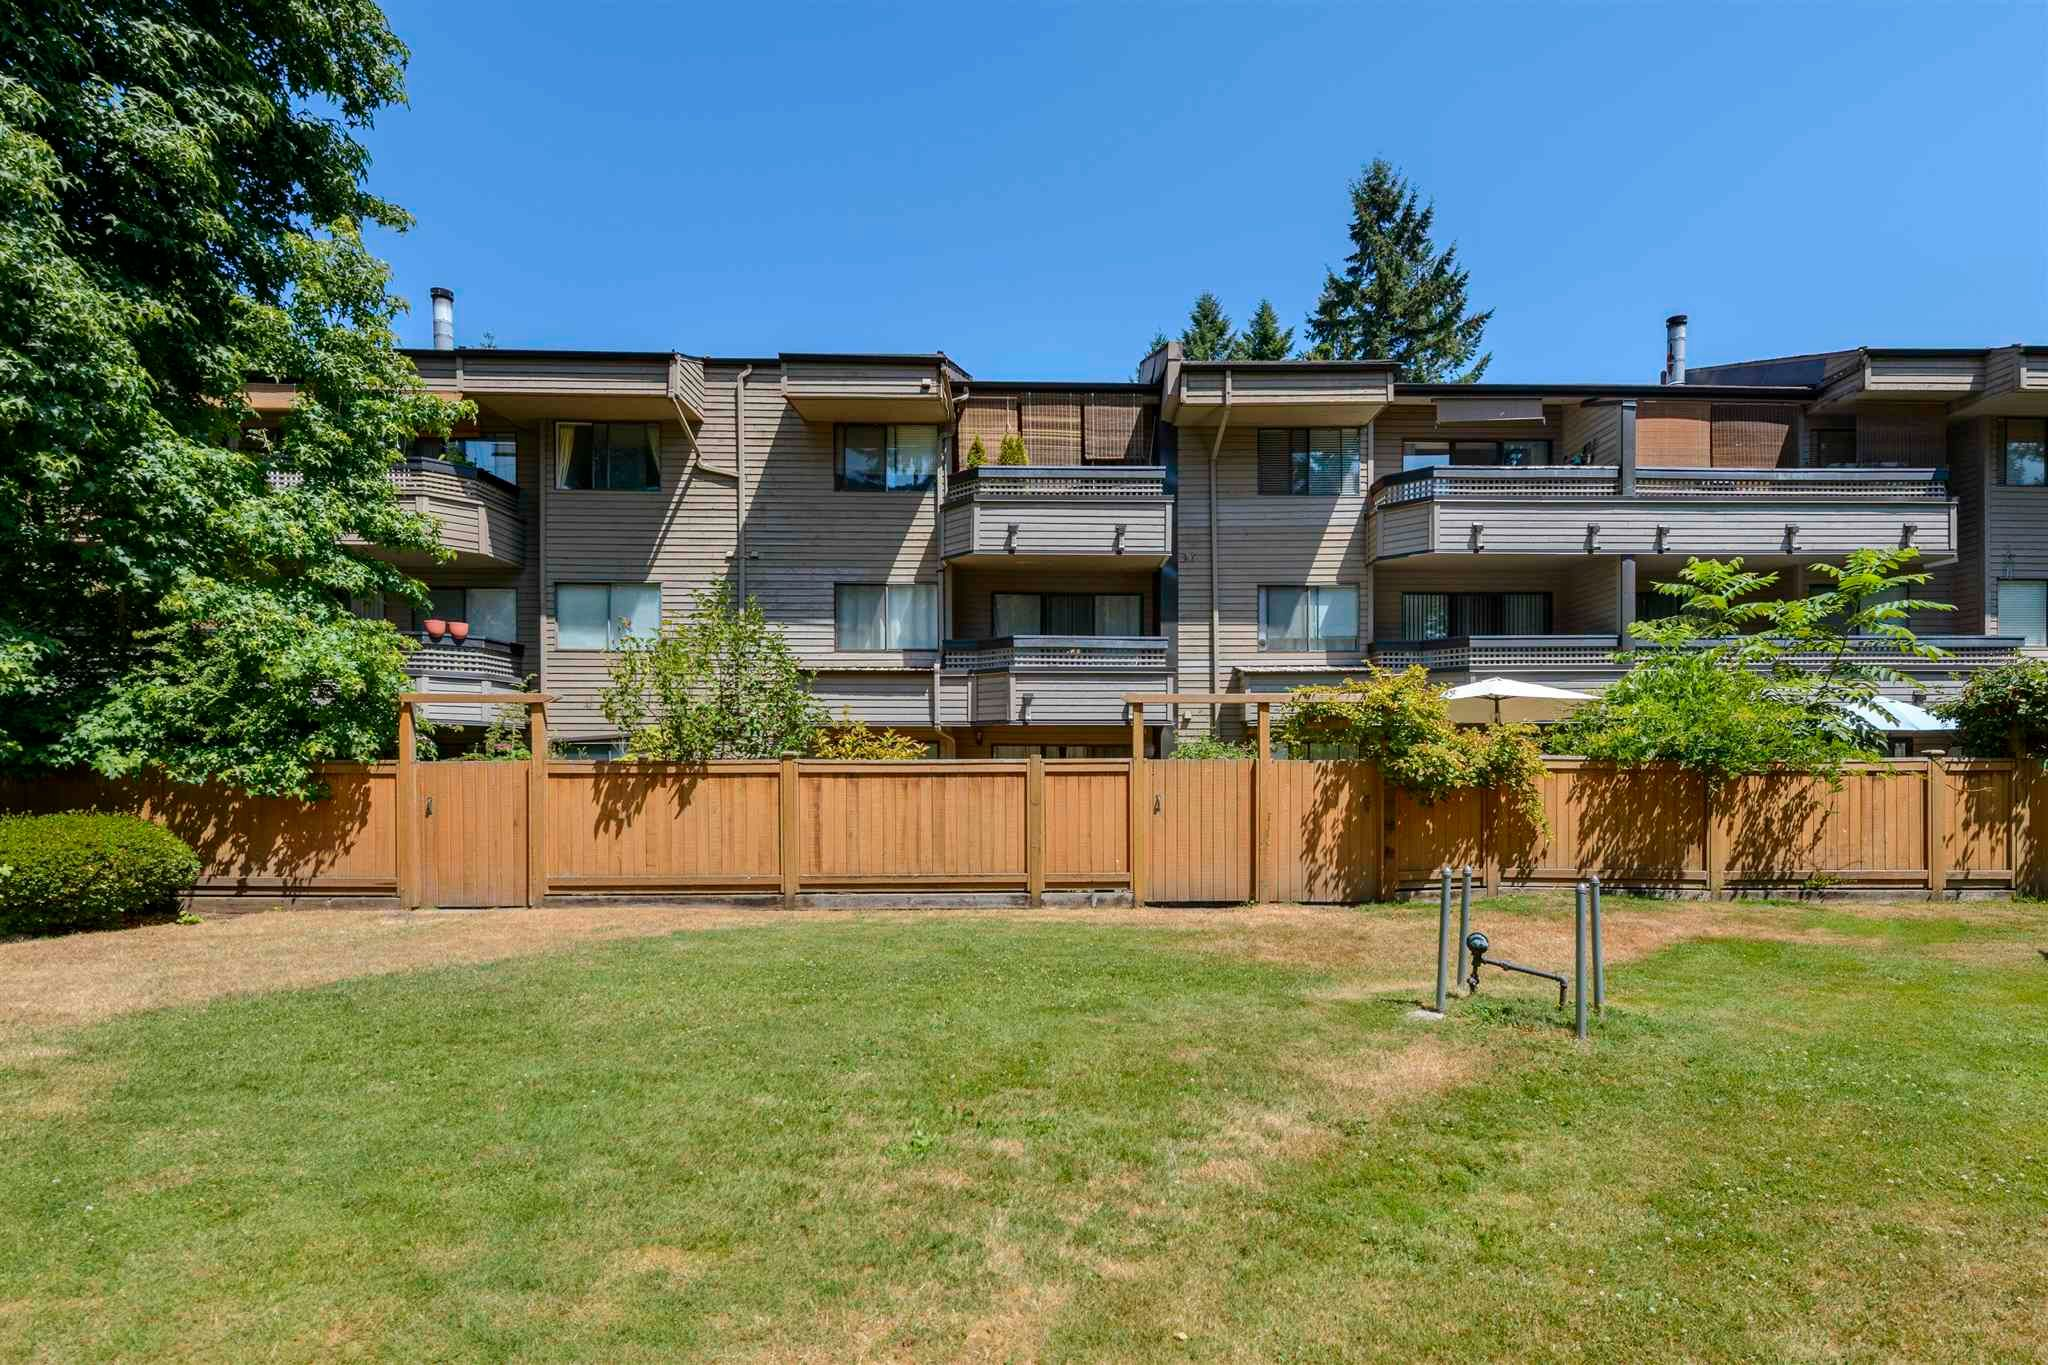 """Main Photo: 111 1195 PIPELINE Road in Coquitlam: New Horizons Condo for sale in """"DEERWOOD COURT"""" : MLS®# R2601284"""